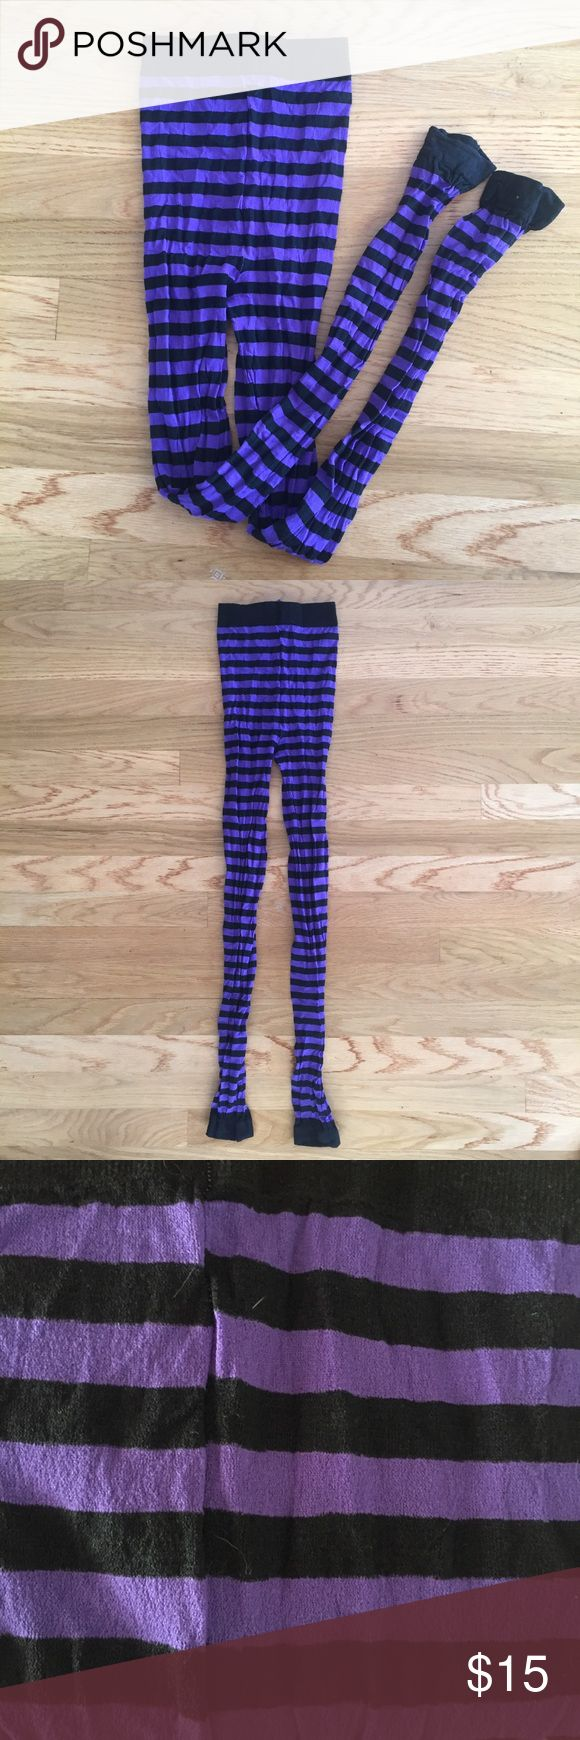 Striped footless tights Purple and black striped footless leggings. Worn once, these are perfect for a witch costume! Last photo shows true purple color. Accessories Hosiery & Socks